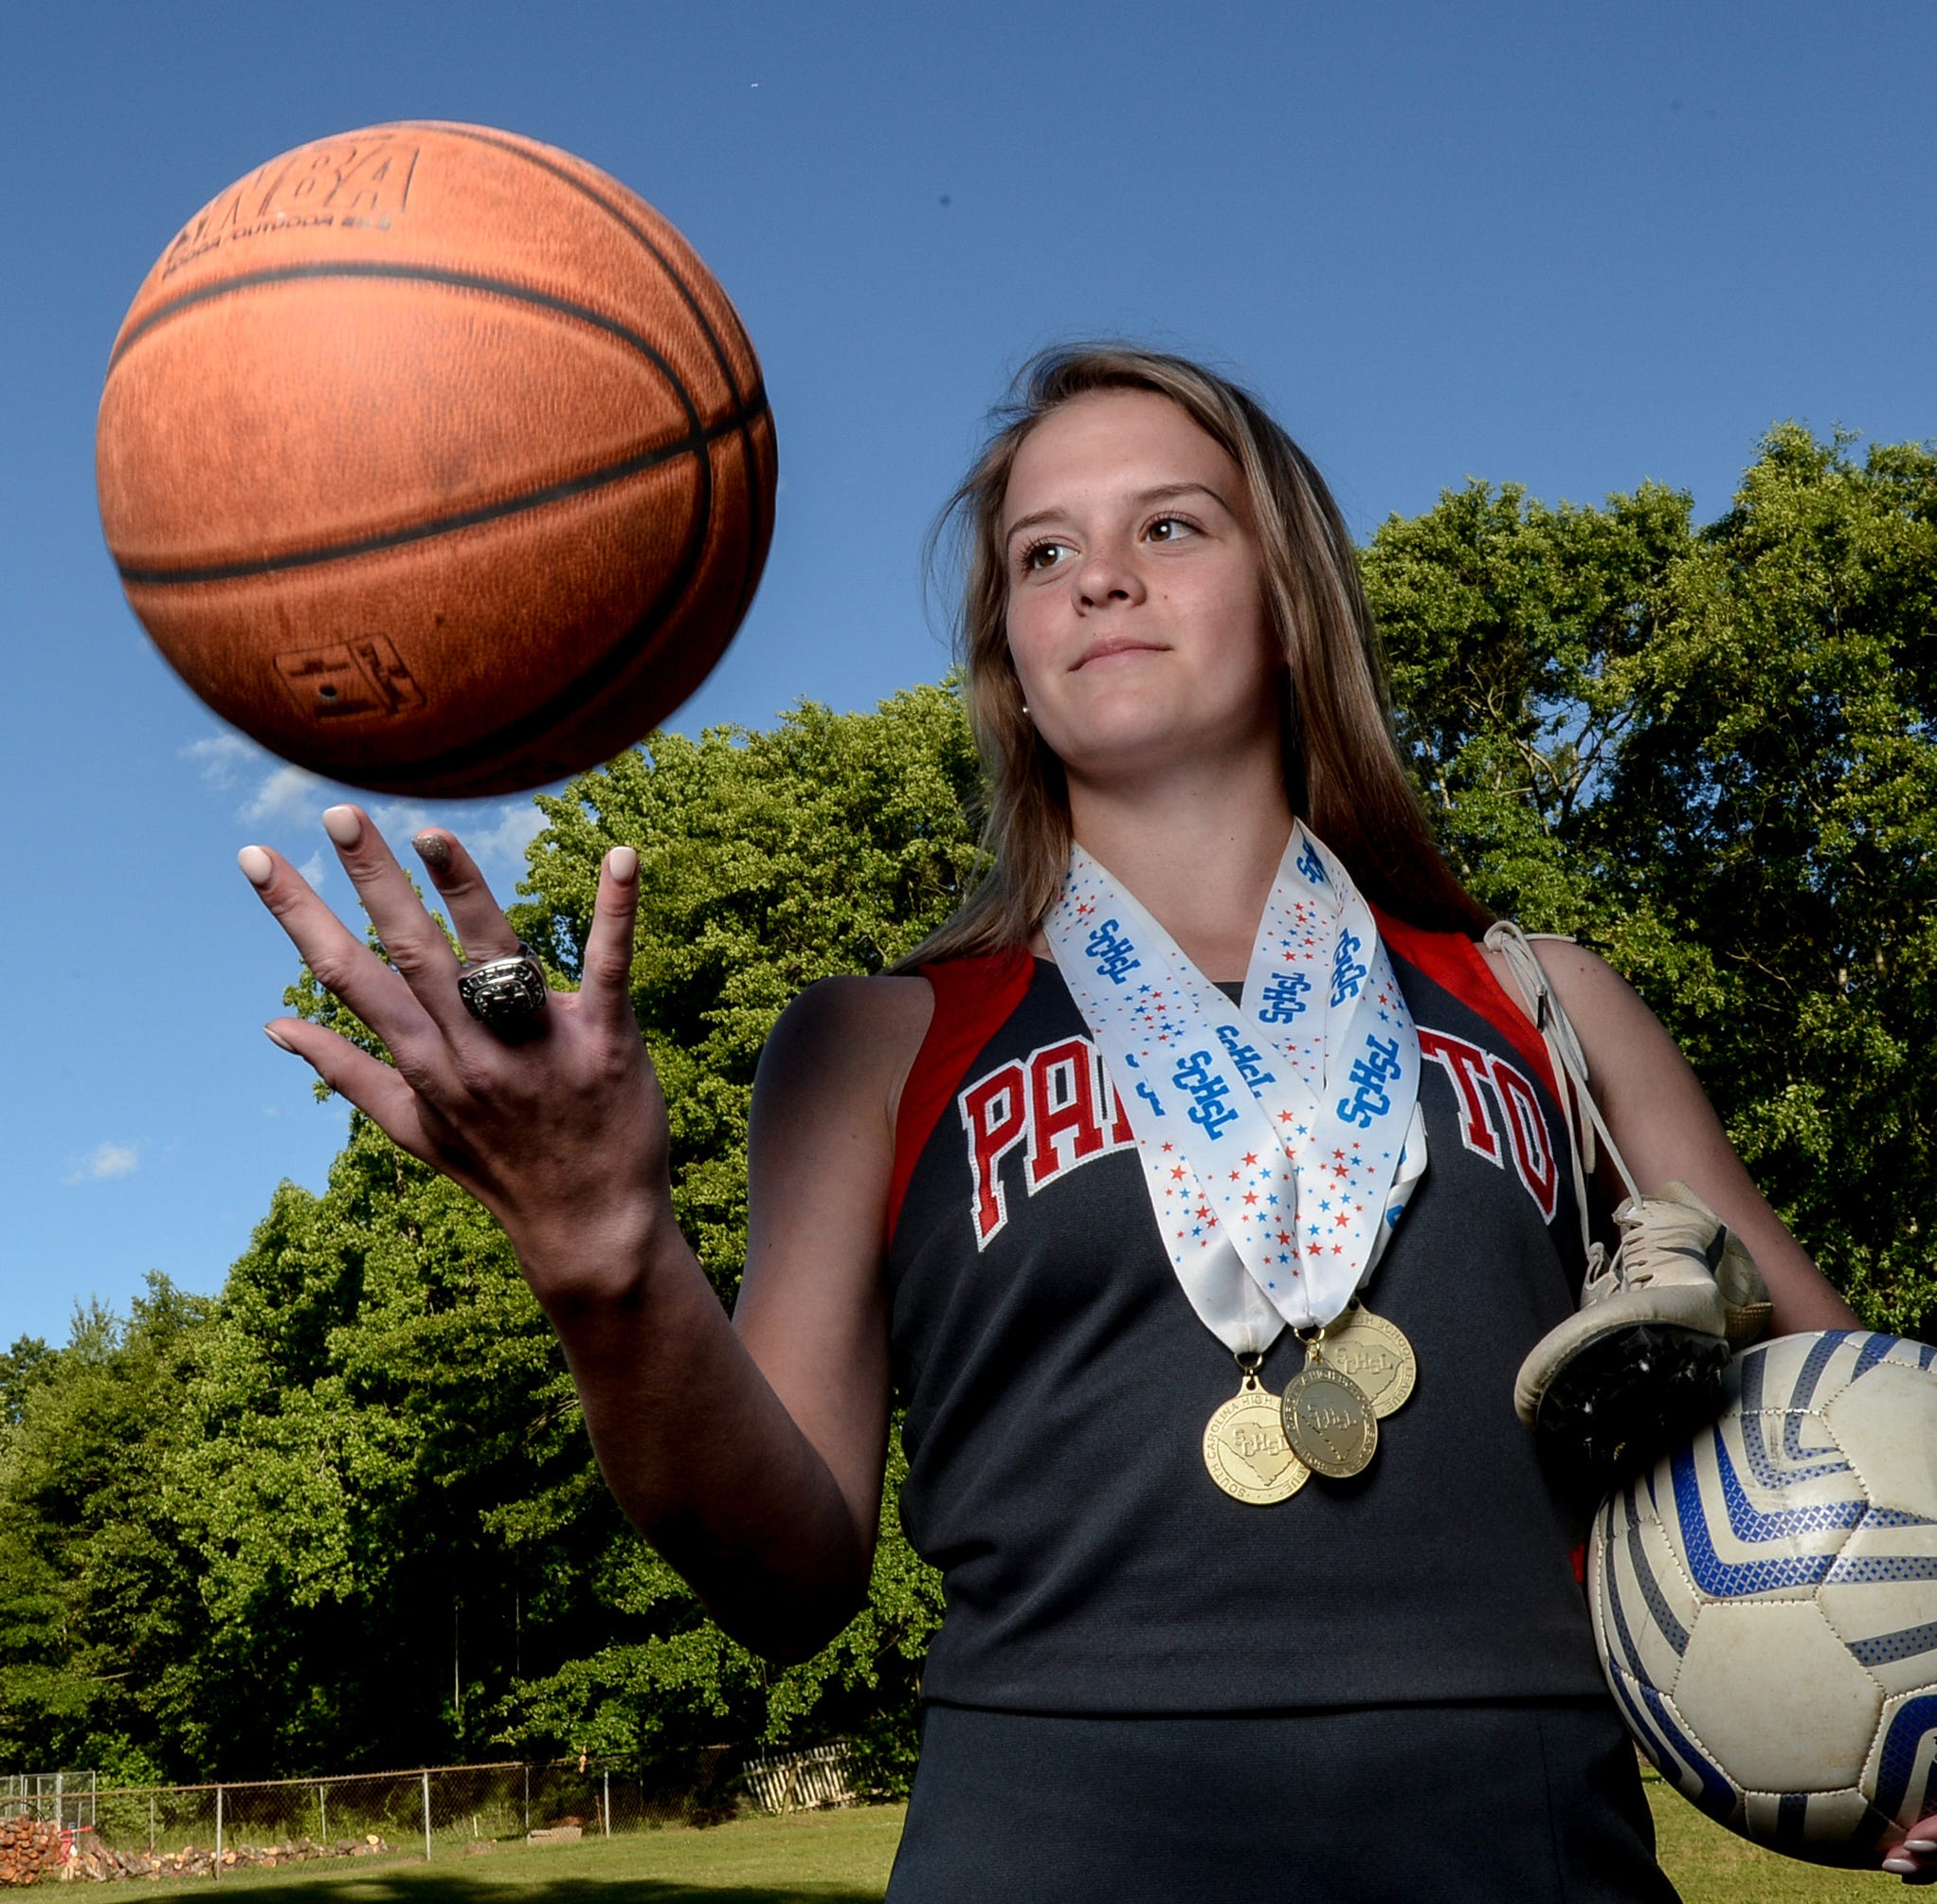 Palmetto High four-sport athlete Maggie Magruder up for challenge following surgery